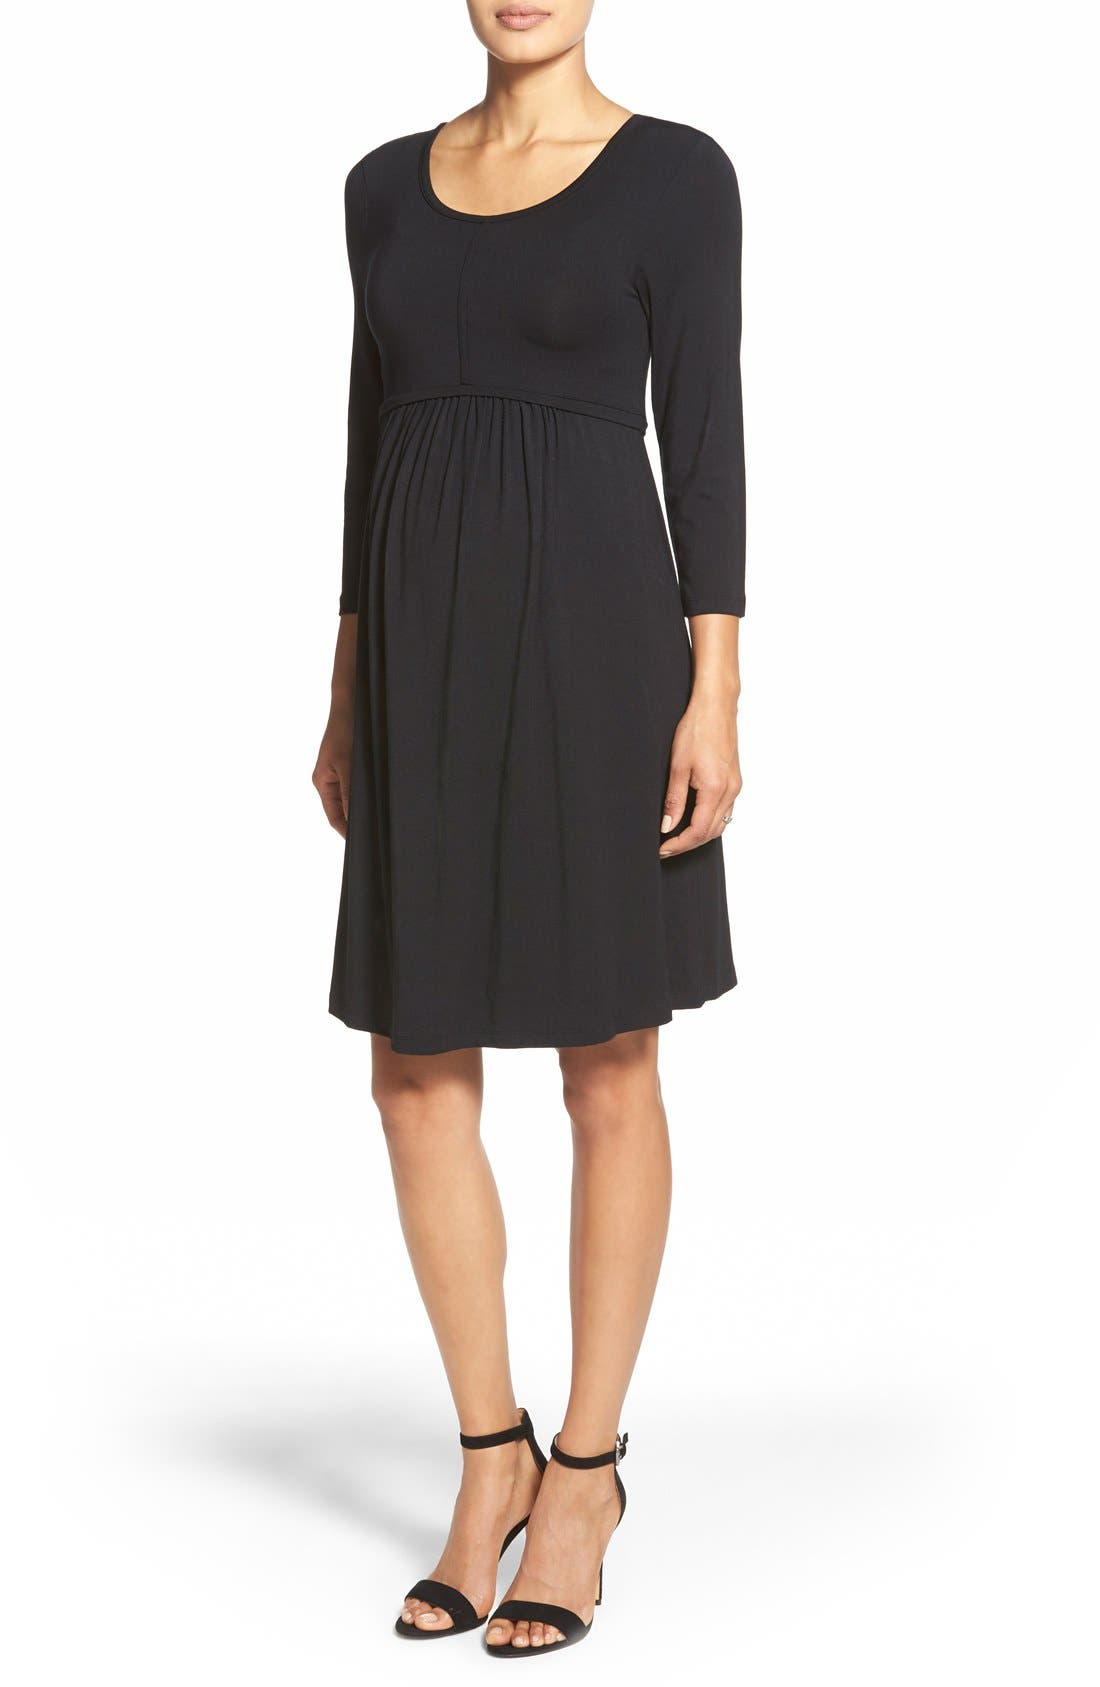 Main Image - Tart Maternity 'Mathilde' Elbow Sleeve Maternity Dress